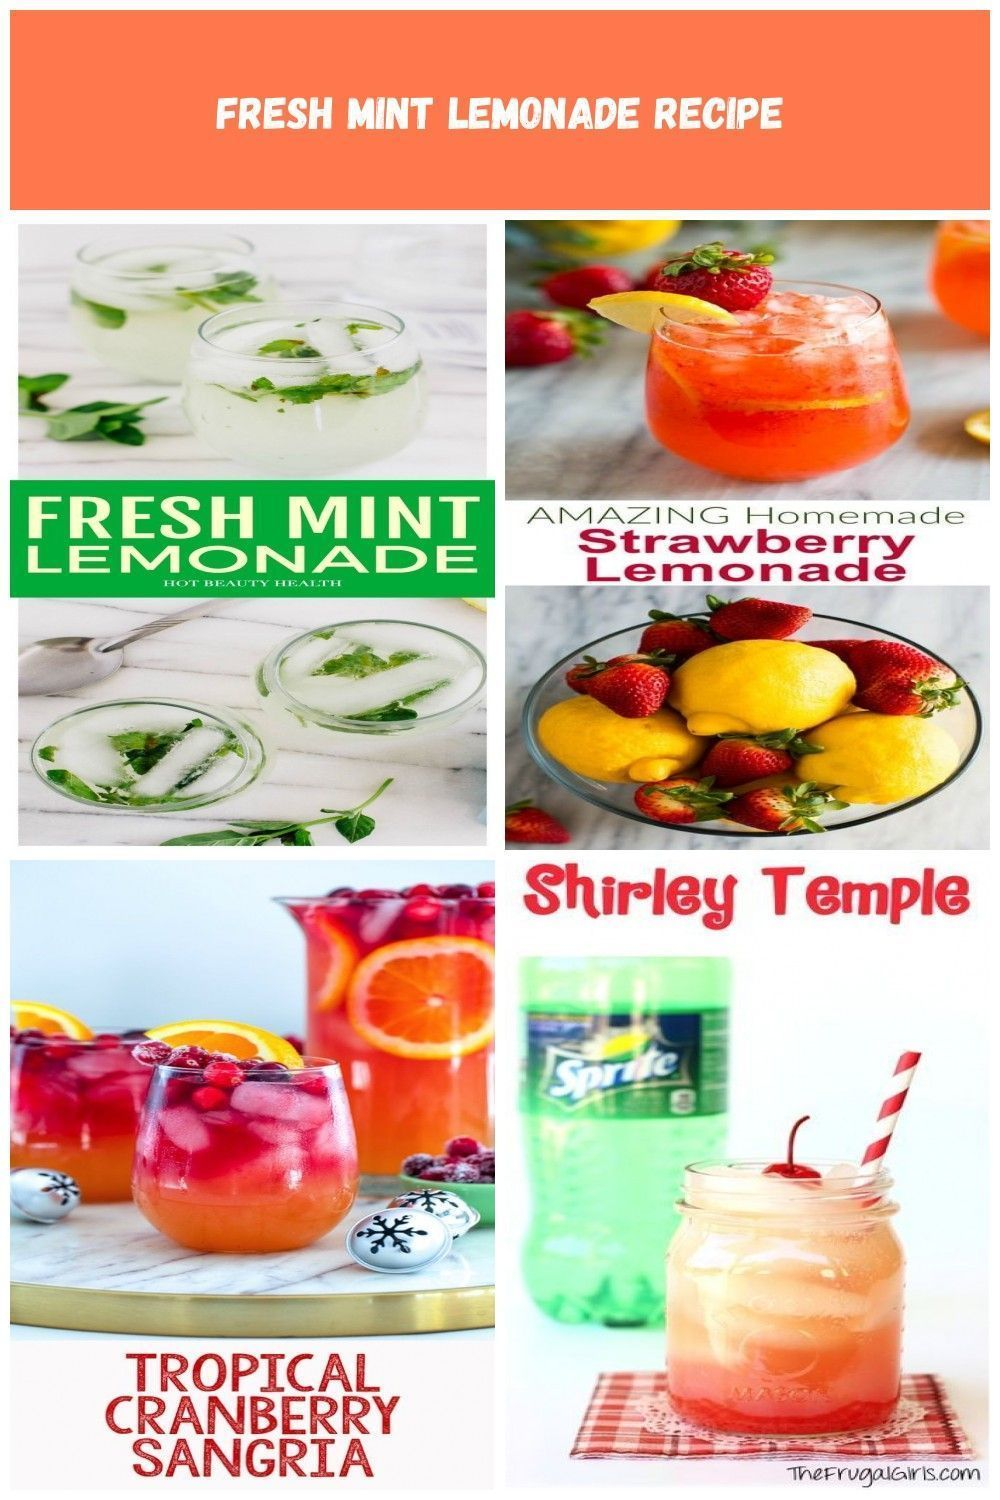 Looking for a non-alcoholic summer drink to cool off during the sweltering heat. Downing this Fresh Mint Lemonade is the best way to do that! It is so wonderfully refreshing, easy to make, and it's going to be a hit at your next party! #hotbeautyhealth #freshmintlemonade #mintlemonade #lemonaderecipe #lemonade #recipe #nonalcoholic #summerdrinks Summer drink Fresh Mint Lemonade Recipe #nonalcoholicsummerdrinks Looking for a non-alcoholic summer drink to cool off during the sweltering heat. Dow #nonalcoholicsummerdrinks